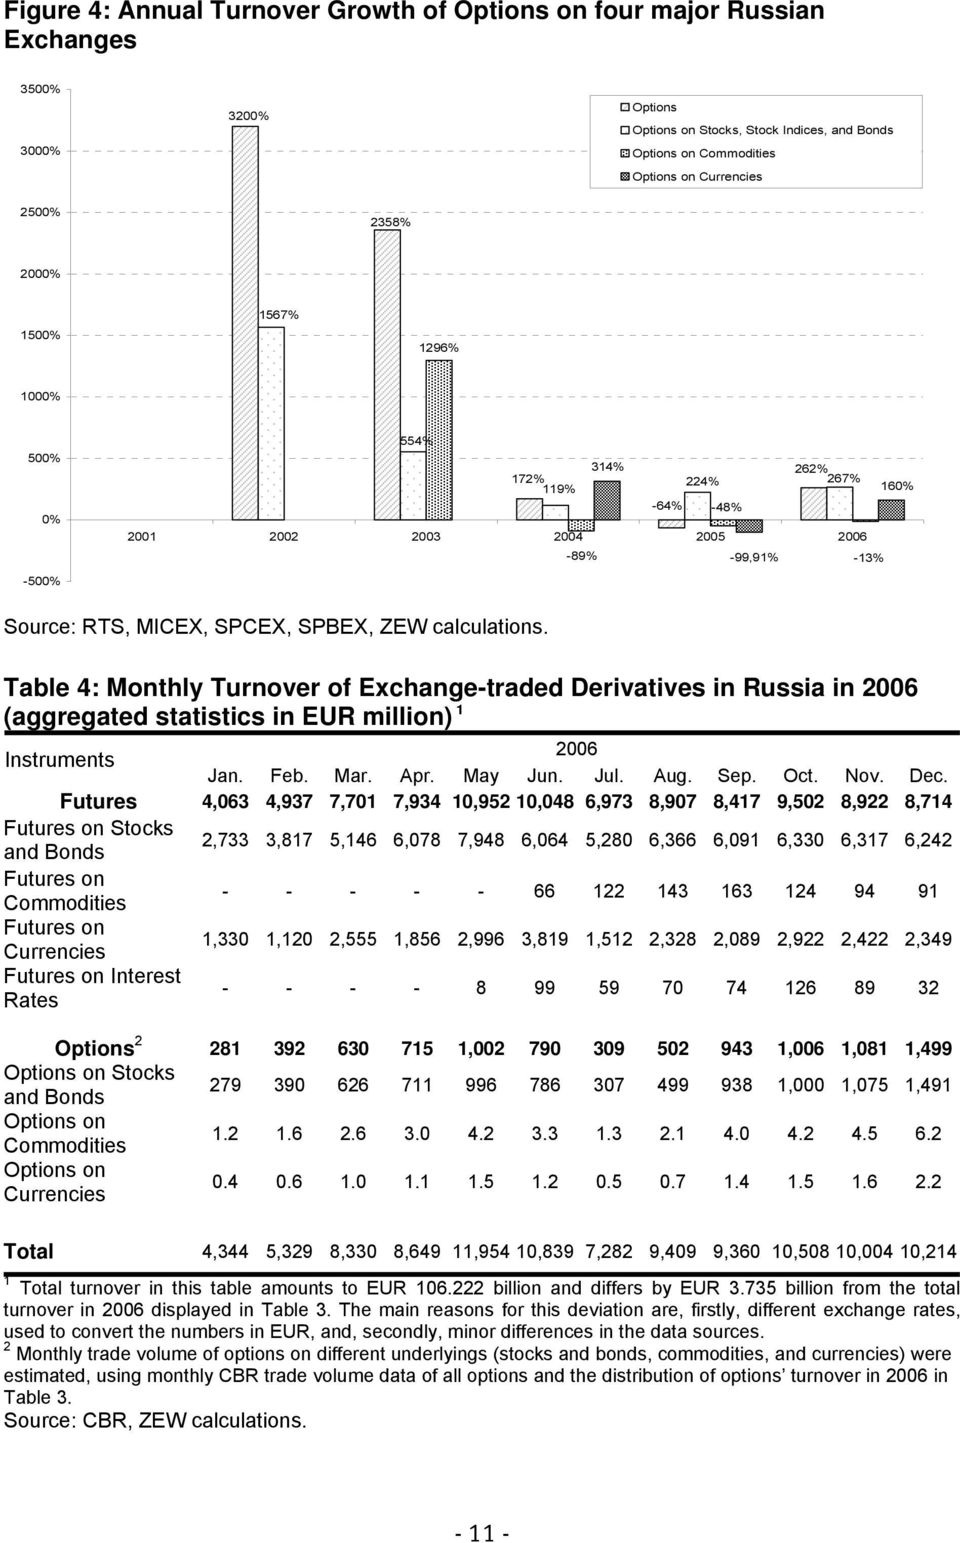 Table 4: Monthly Turnover of Exchange-traded Derivatives in Russia in 2006 (aggregated statistics in EUR million) 1 2006 Instruments Jan. Feb. Mar. Apr. May Jun. Jul. Aug. Sep. Oct. Nov. Dec.